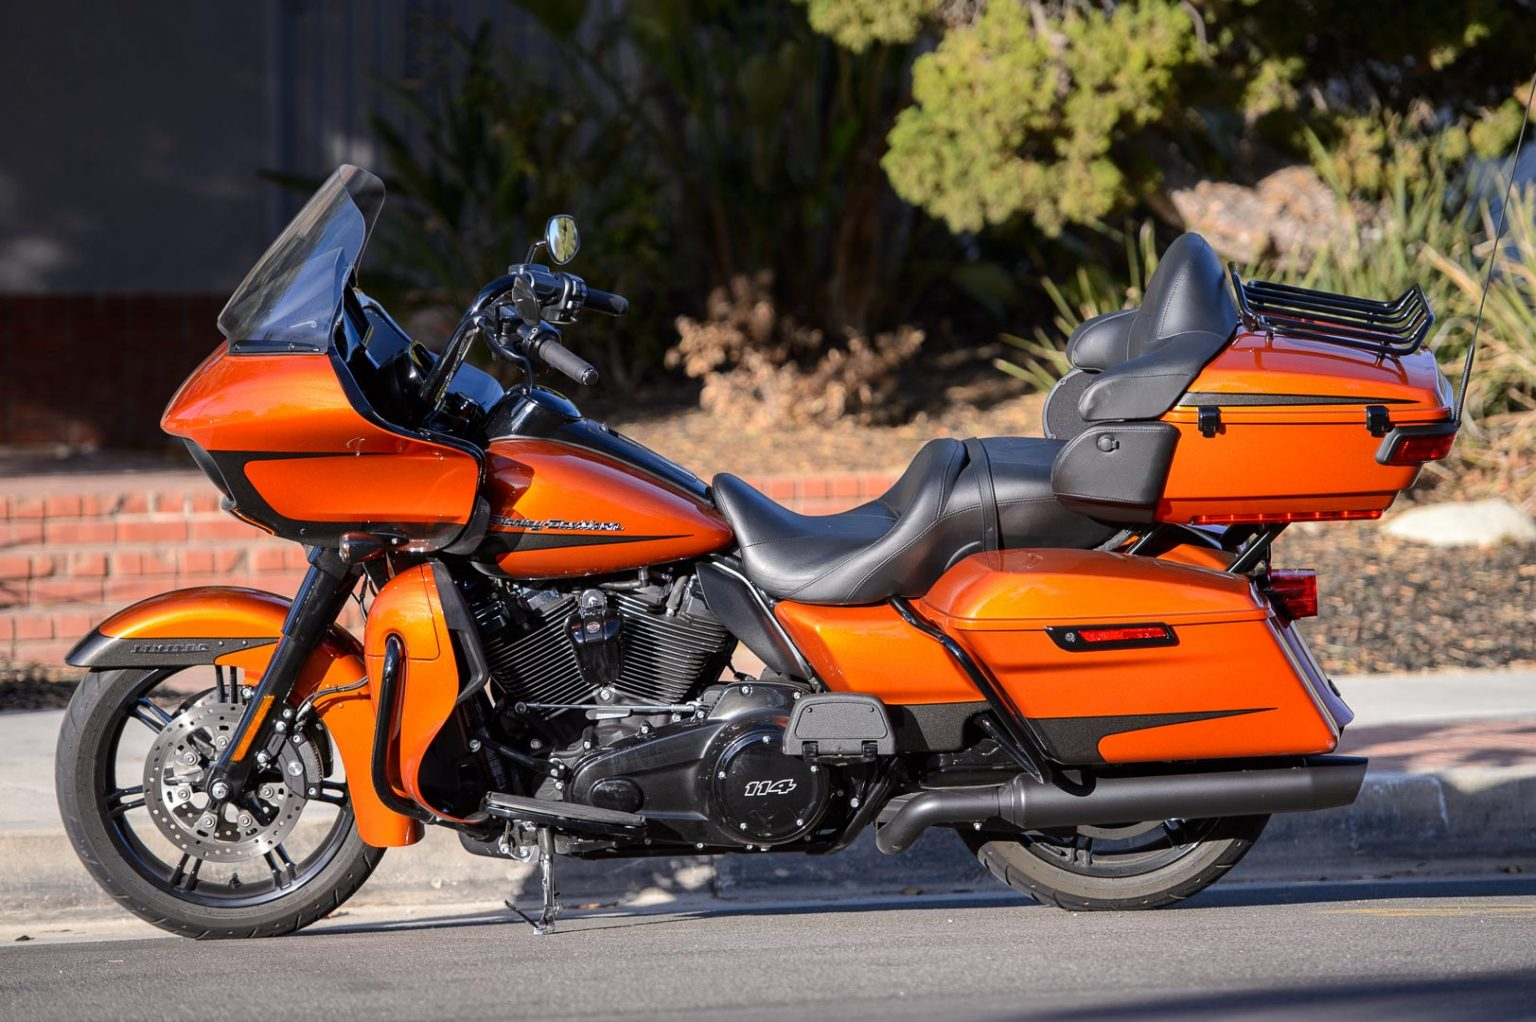 2020 Harley-Davidson Road Glide Limited Review (15 Fast Facts)